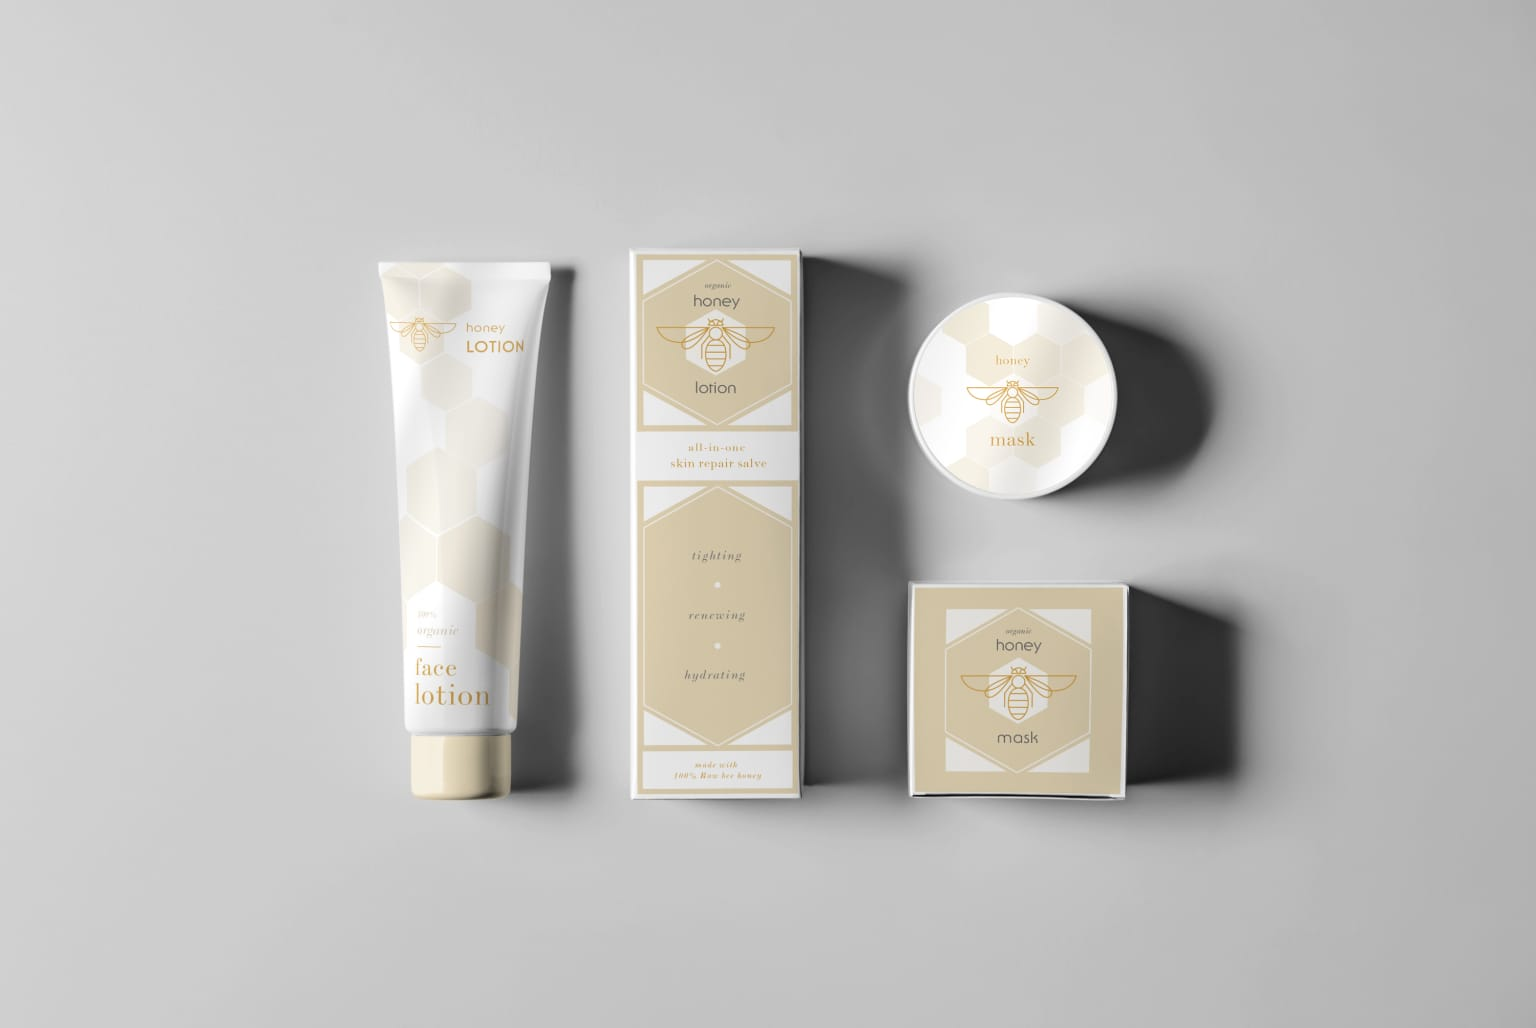 Cosmetic packaging and branding